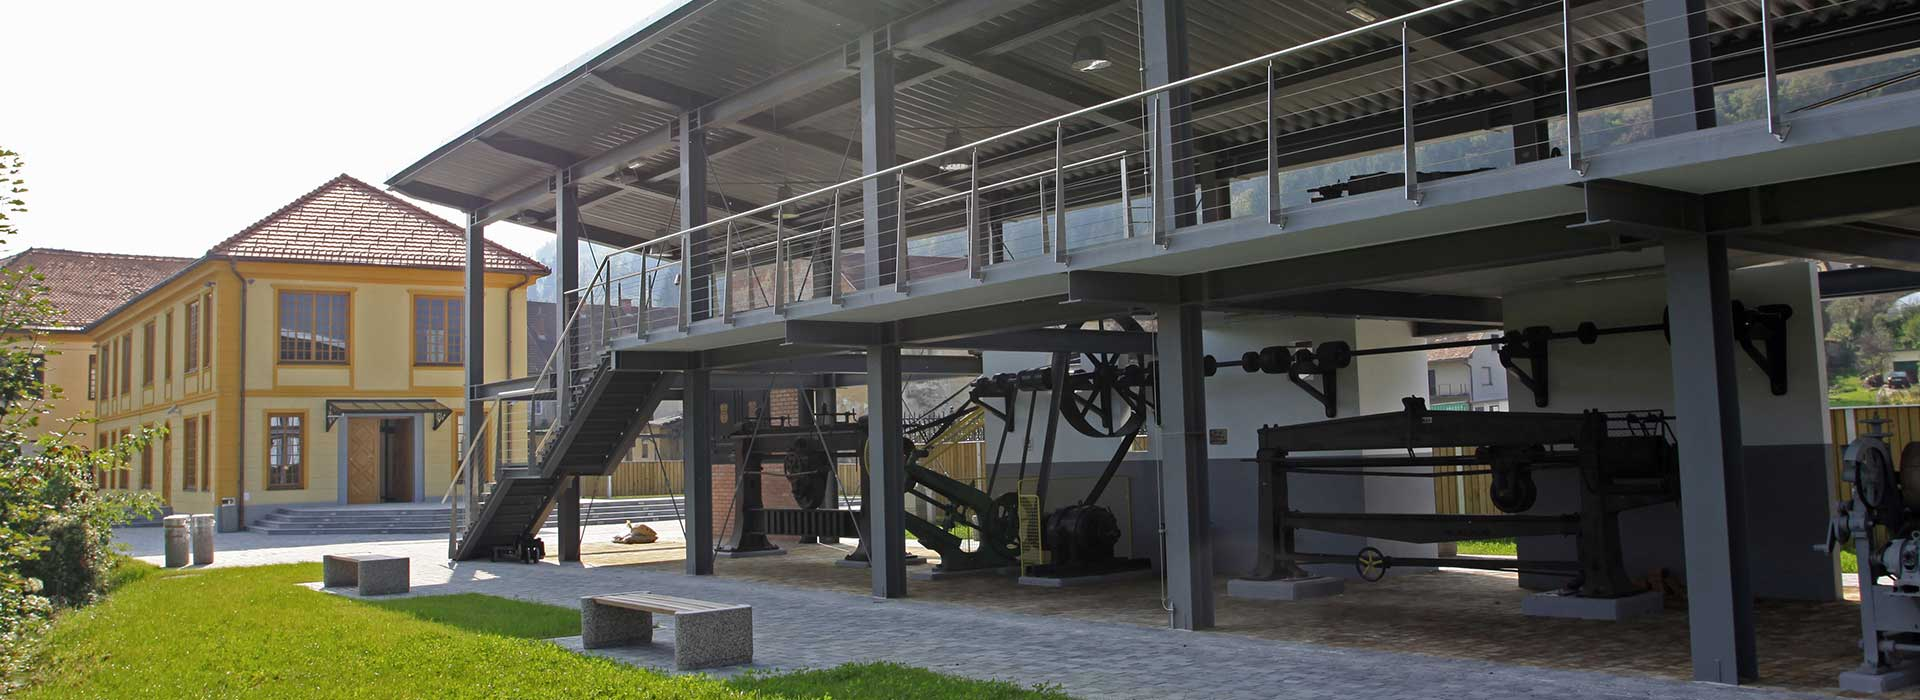 MUSEUM OF THE LEATHER INDUSTRY IN SLOVENIA